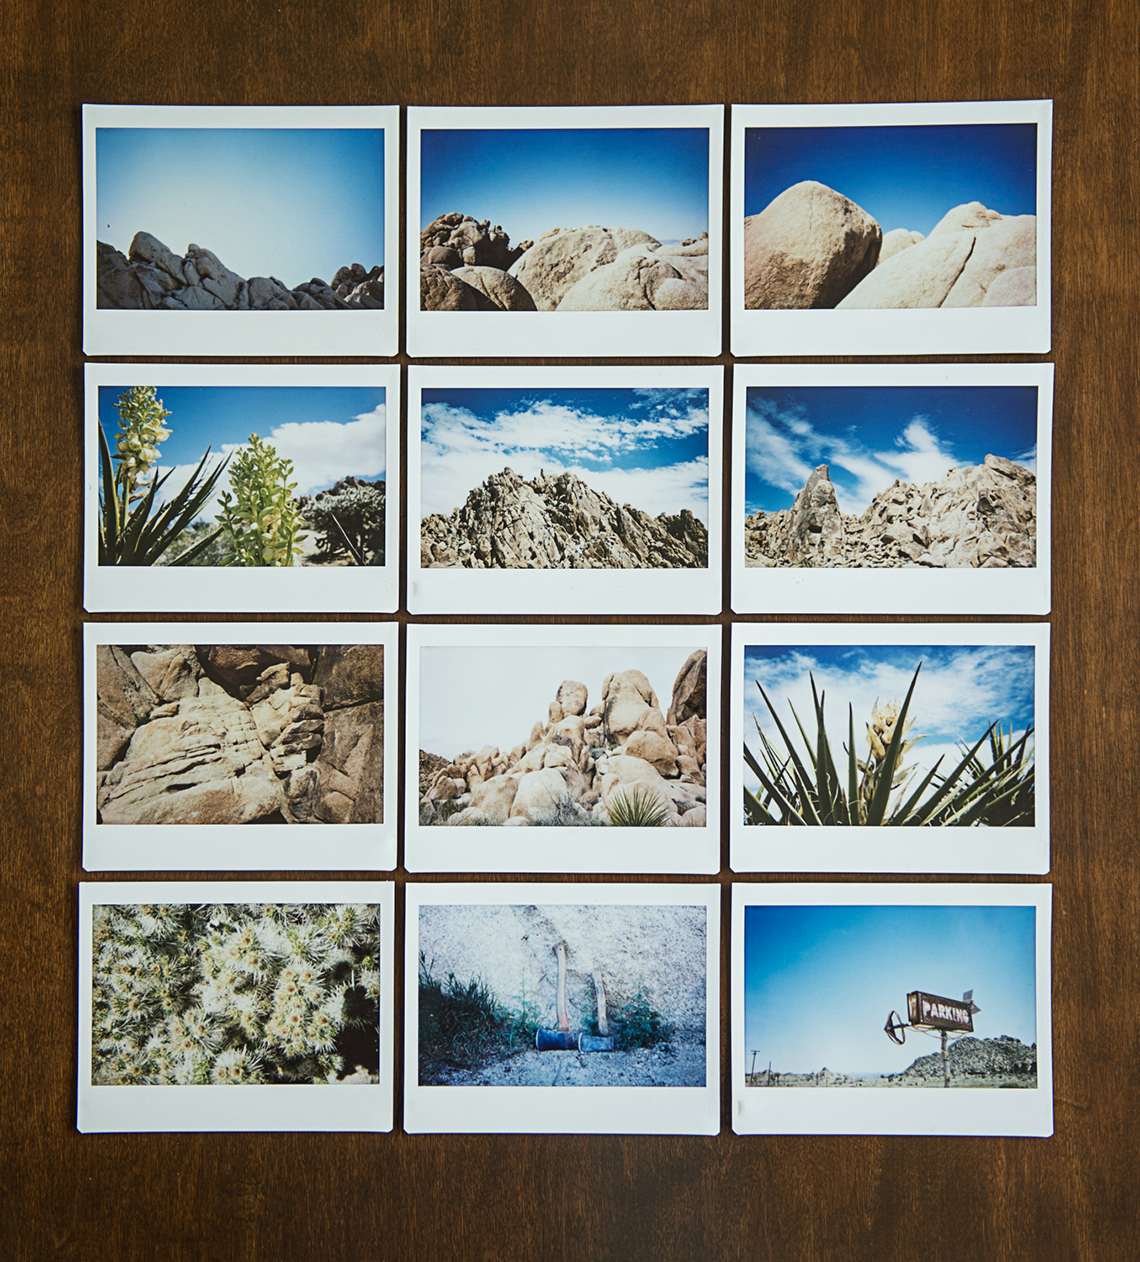 Instax_collage-2